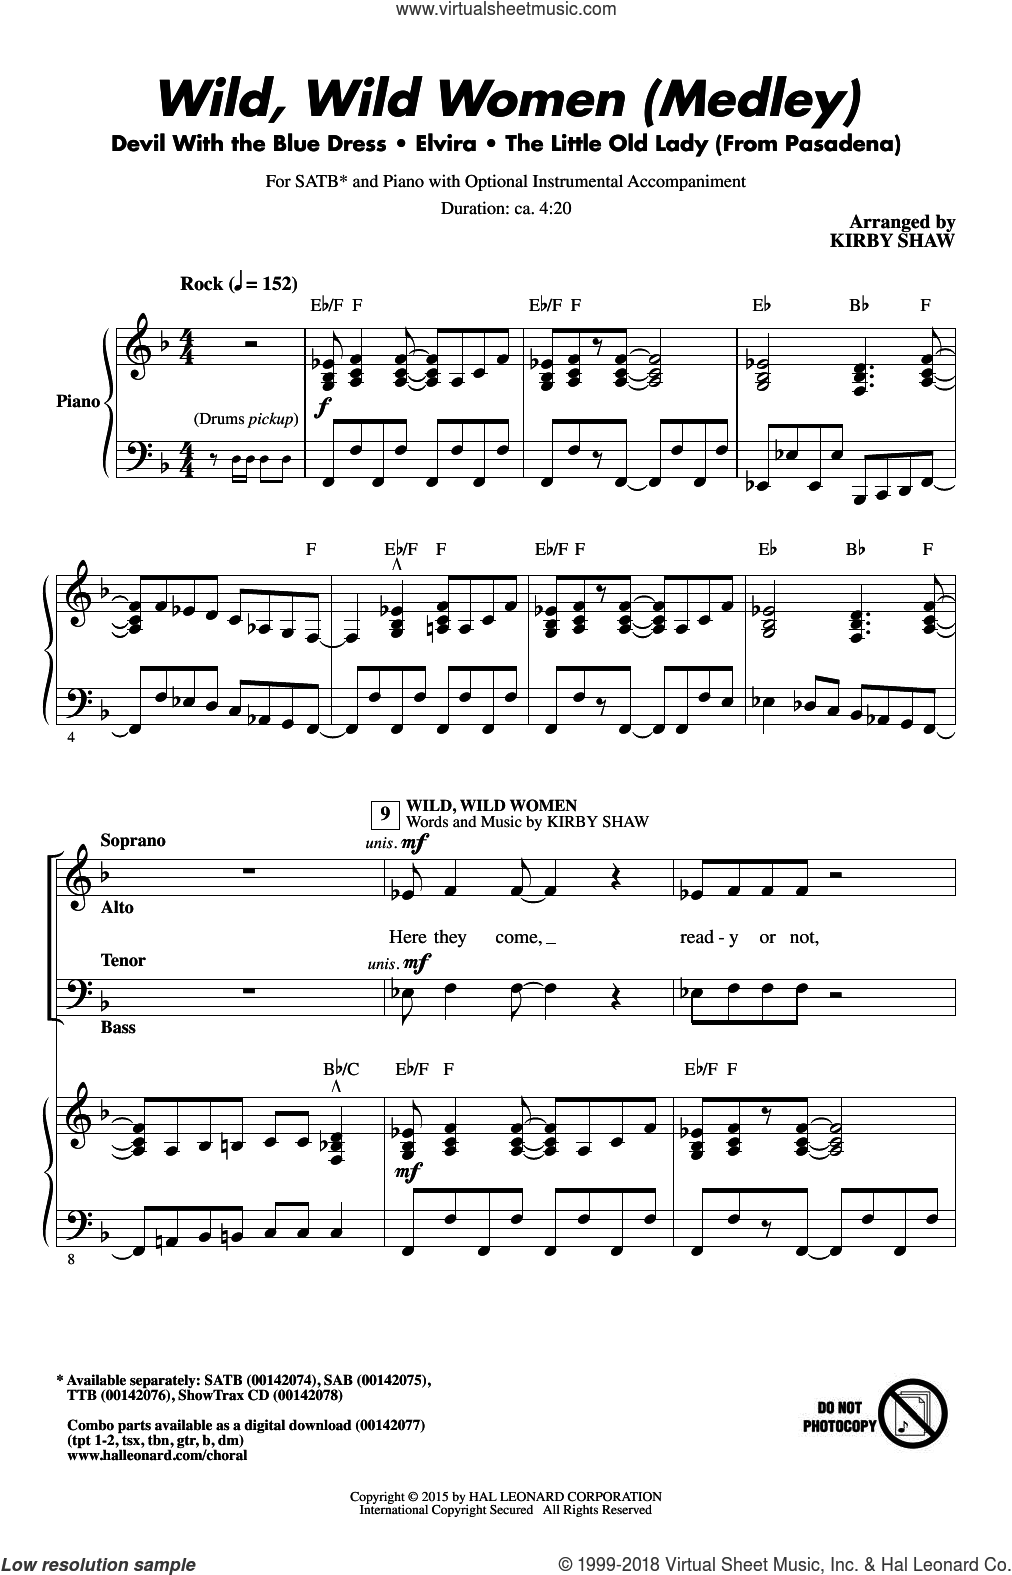 Wild, Wild Women (Medley) sheet music for choir (SATB) by Kirby Shaw, Dallas Frazier, Roger Christian and William Stevenson. Score Image Preview.